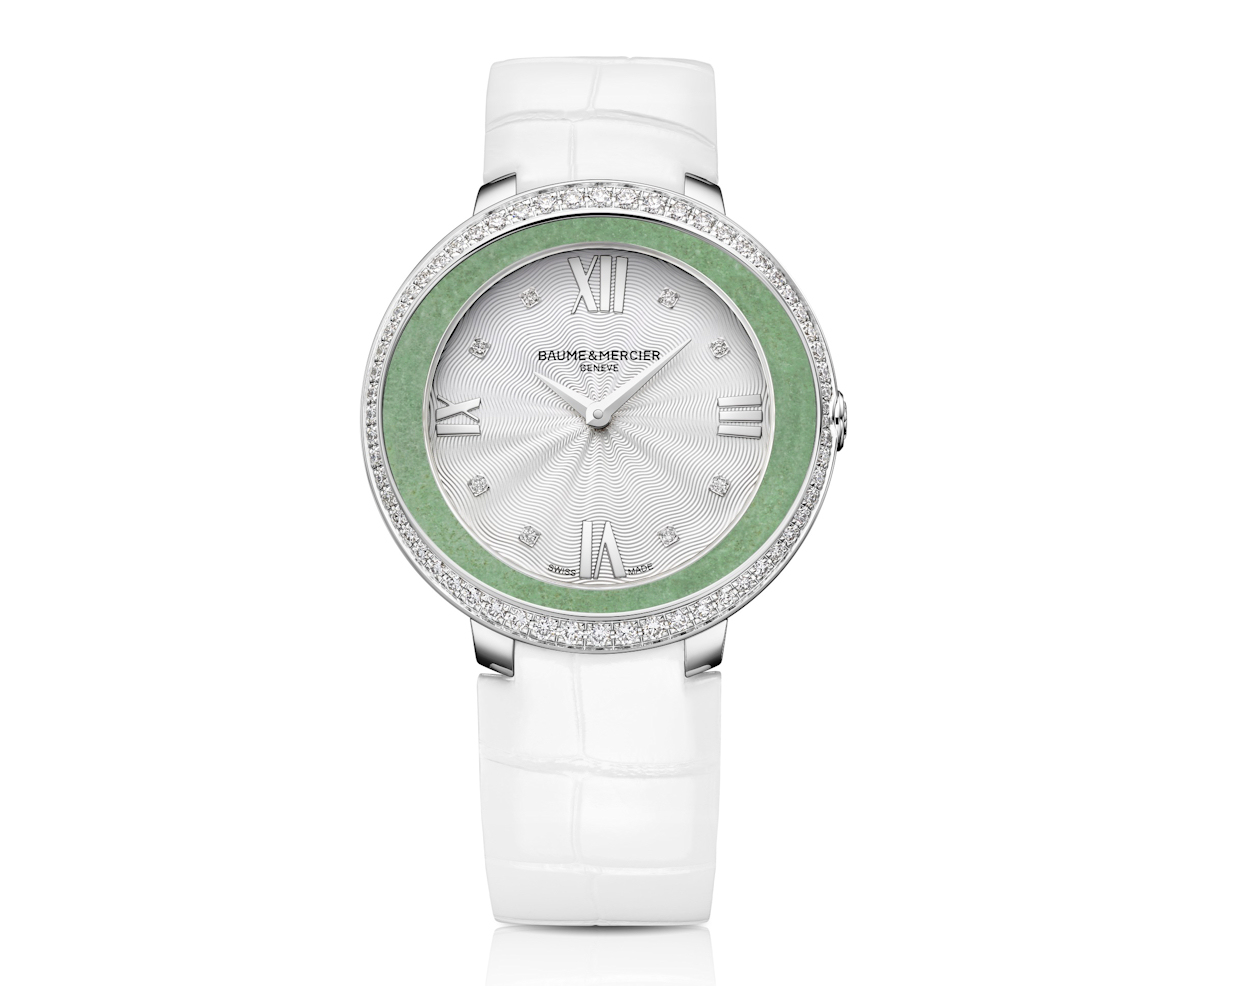 Promesse Jade Limited Edition Watches & Wonders 2015